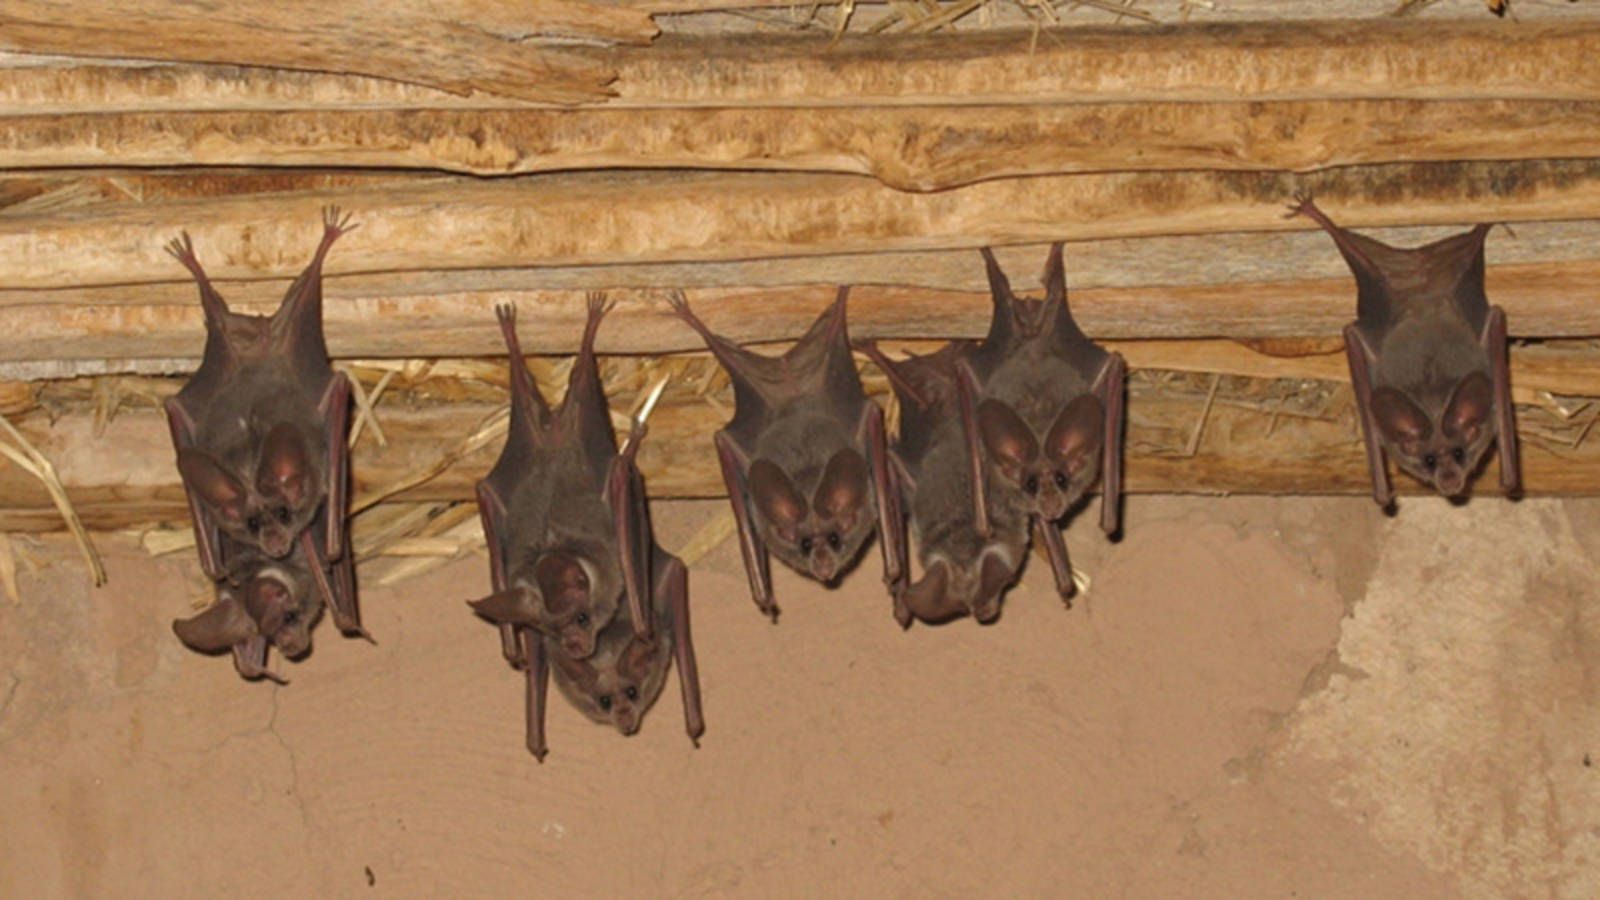 7 Facts About Bats in Honor of National Bat Week · National ... on summer cottage plans, townhouse plans, ranch style homes, ranch art, ranch log homes, strip mall plans, 3 car garage plans, ranch luxury homes, ranch backyard, ranch modular homes, log cabin plans, floor plans,